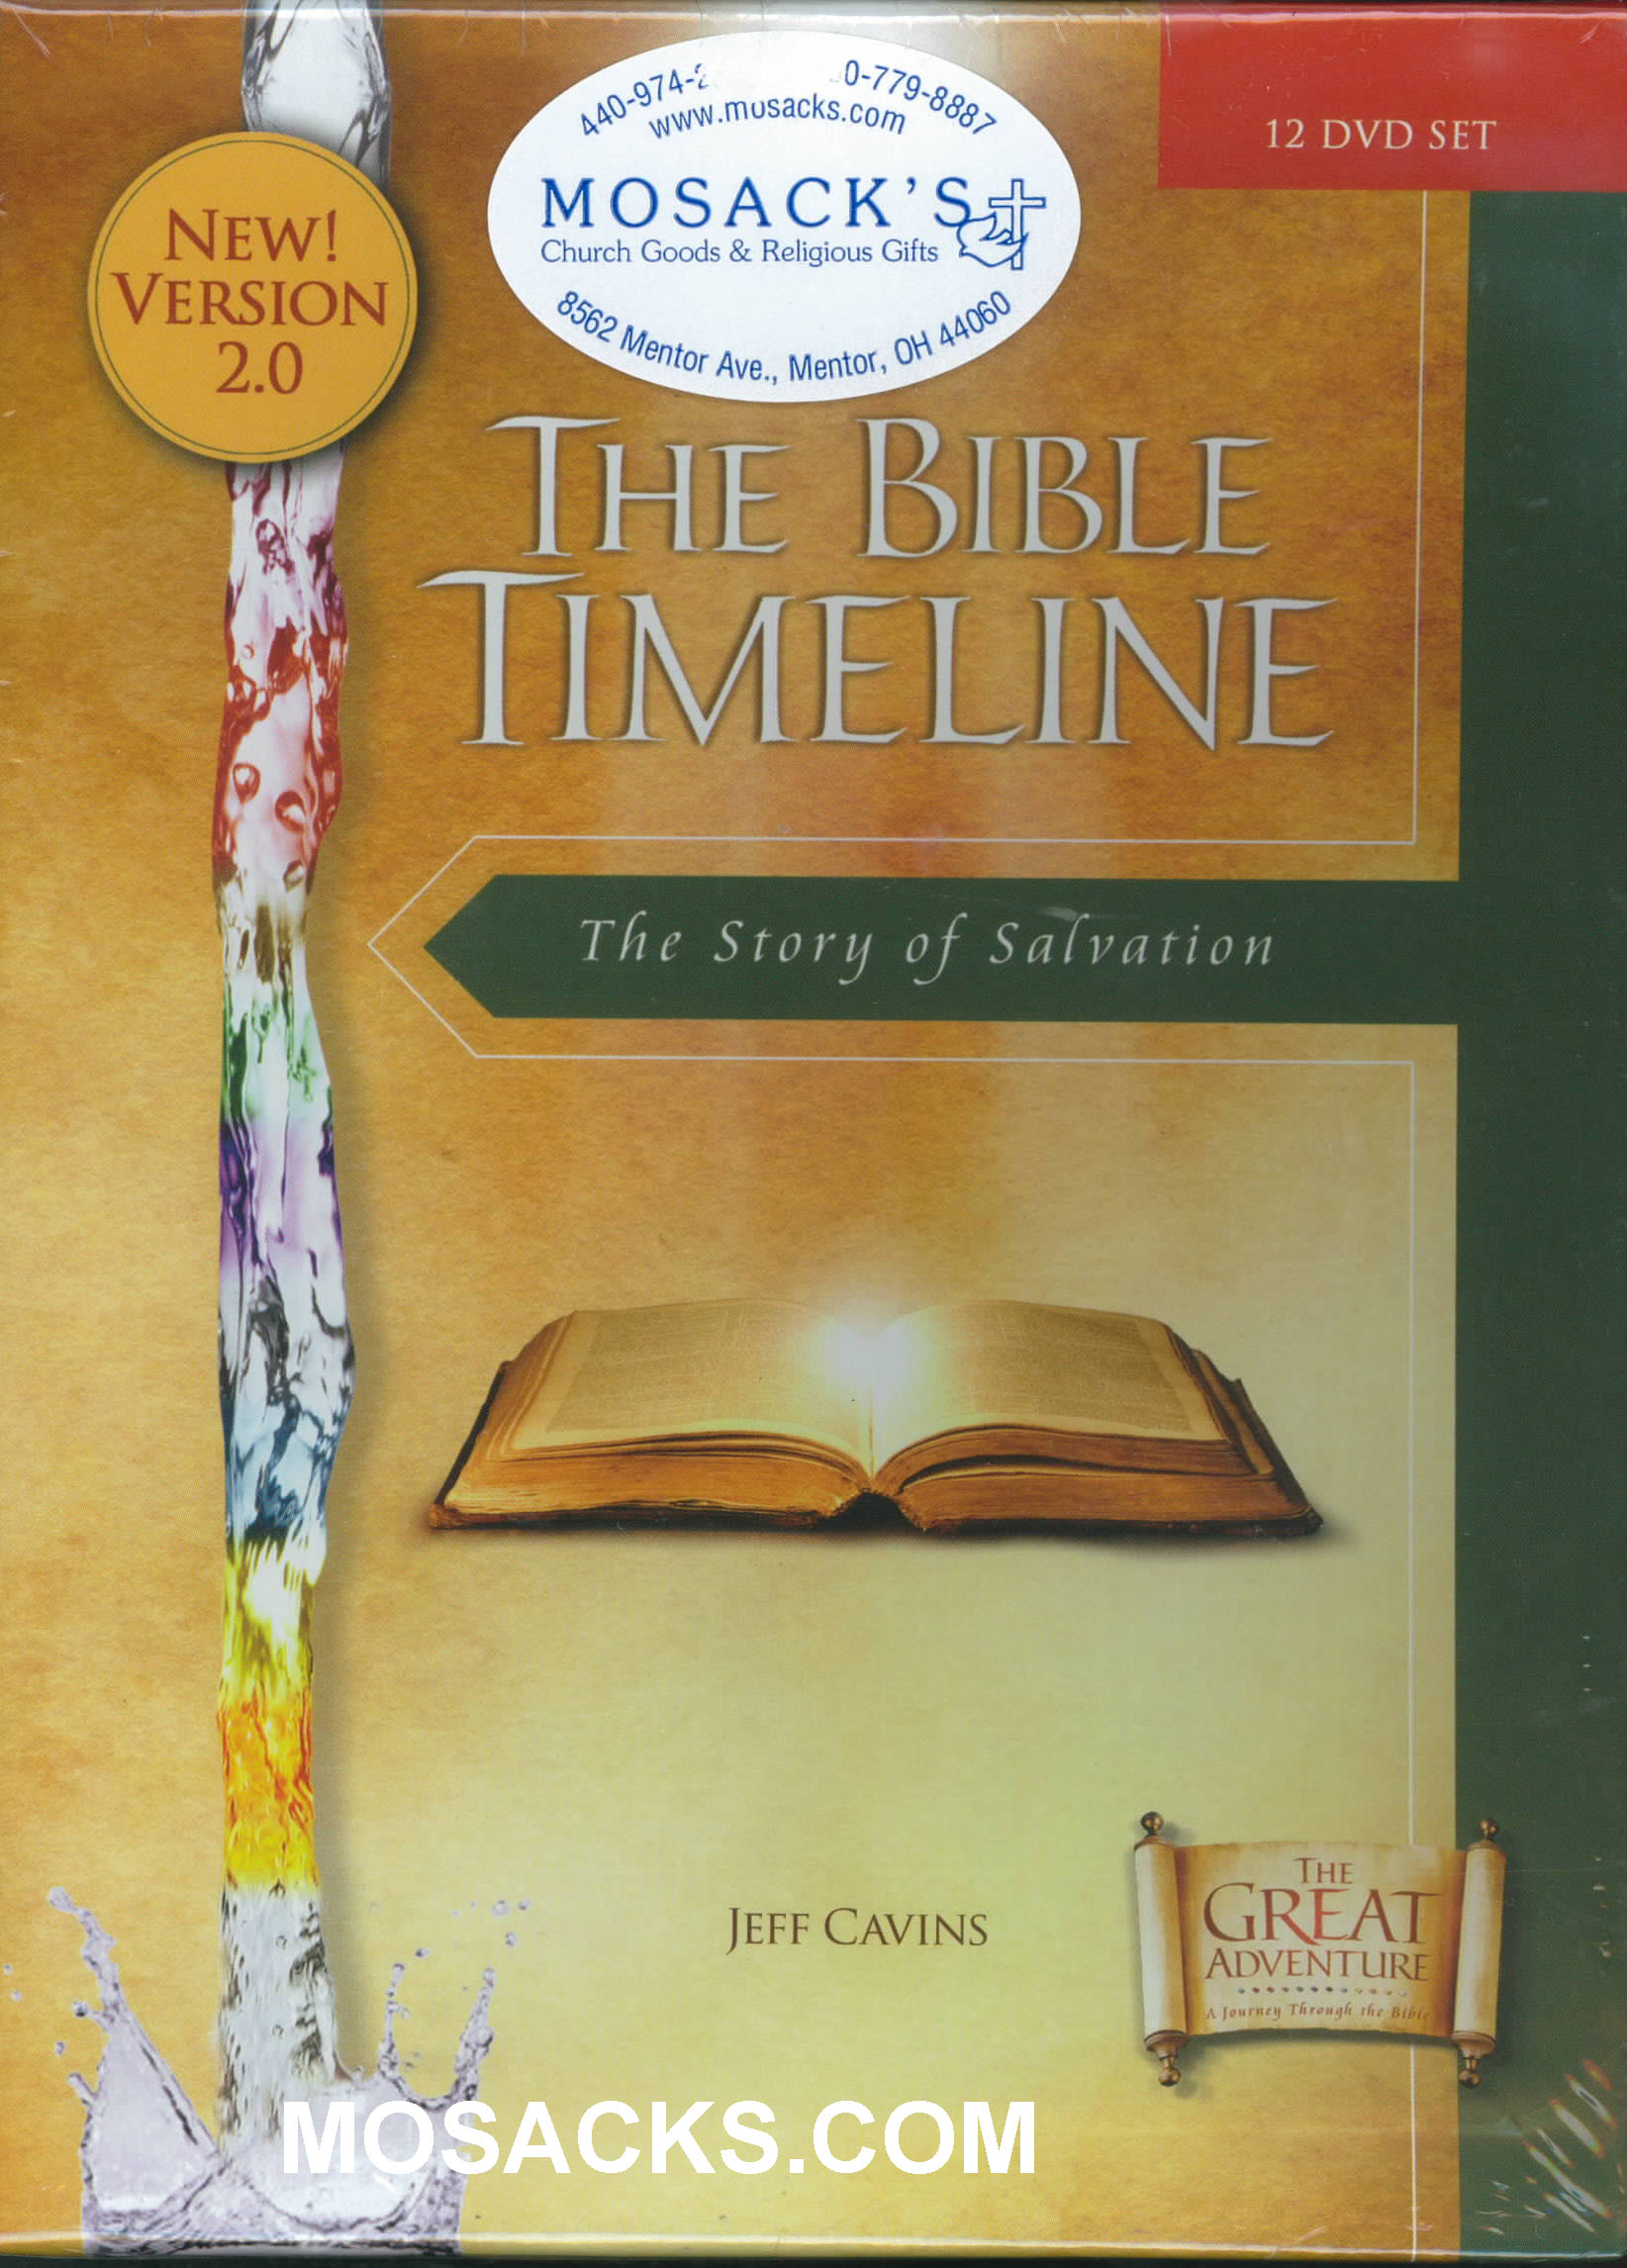 DVD-Bible Timeline 12 DVD Set by Jeff Cavins 388-811661010044